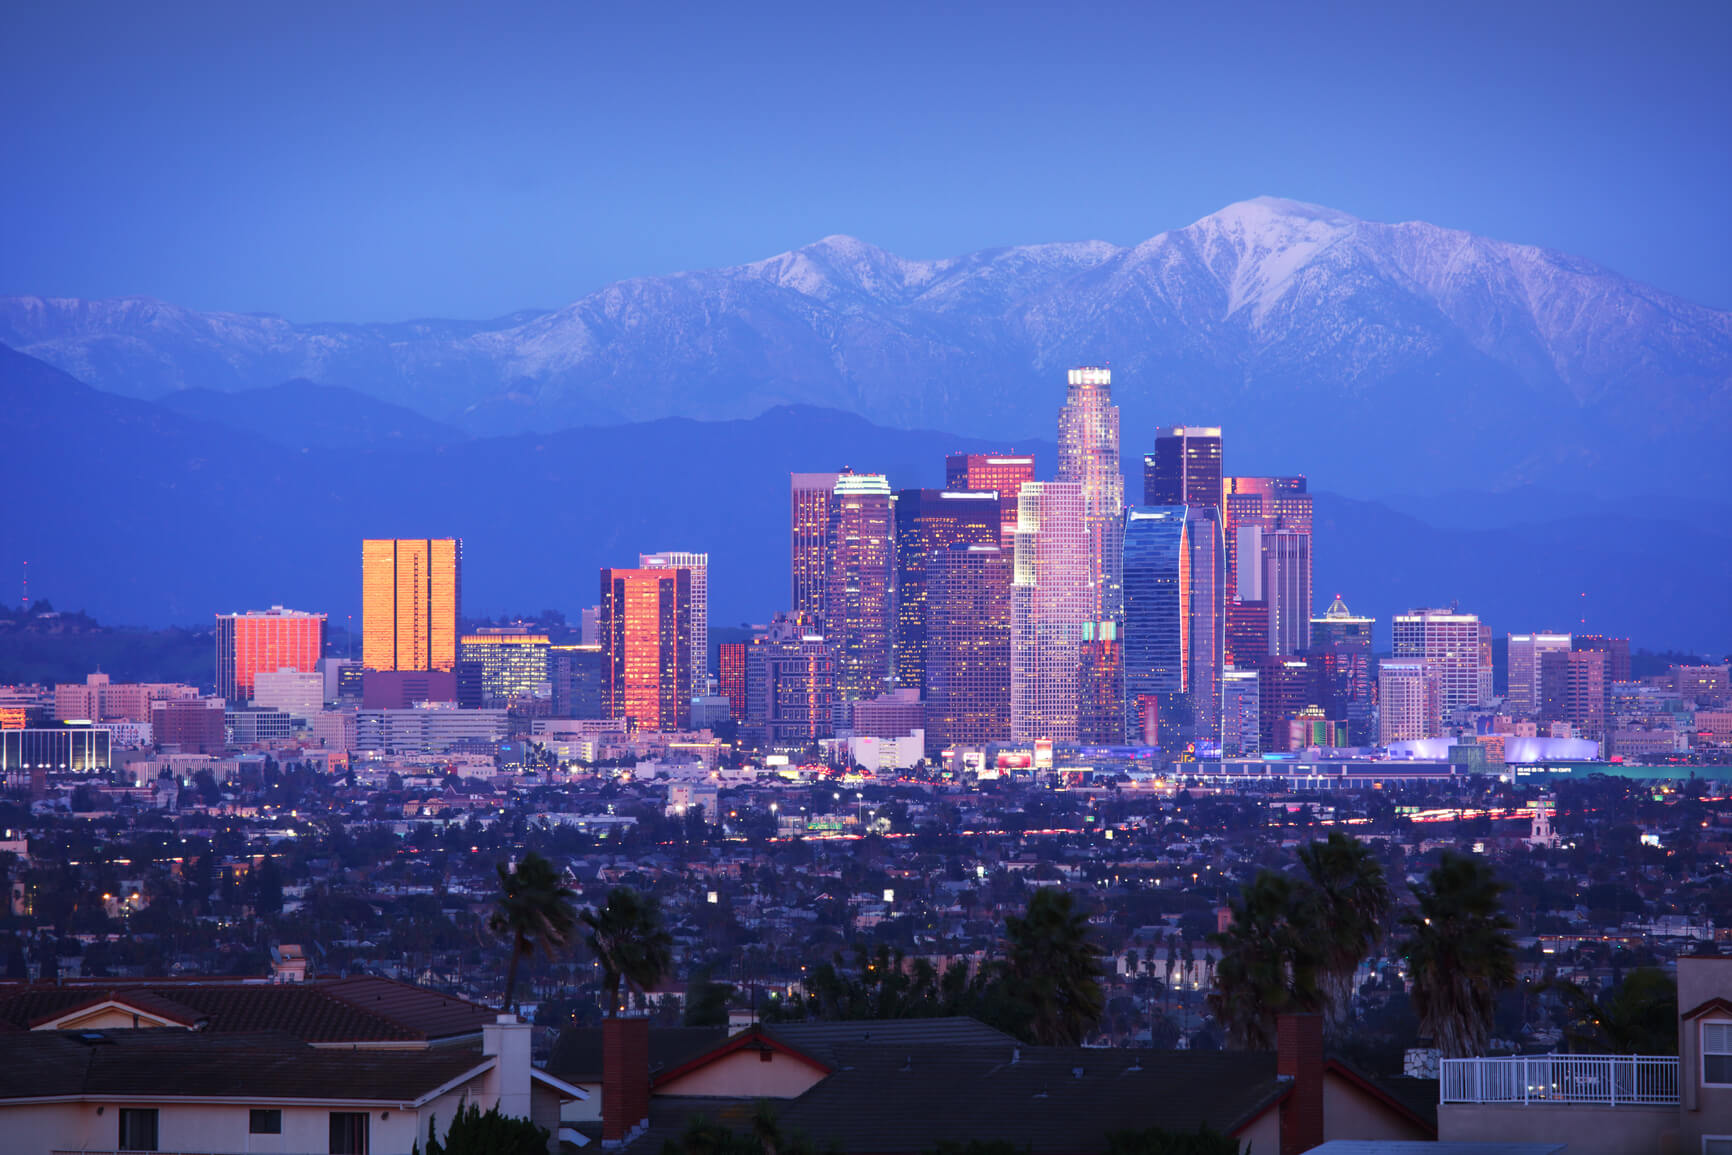 Non-stop from New York to Los Angeles (& vice versa) for only $156 roundtrip (Oct-Feb dates)